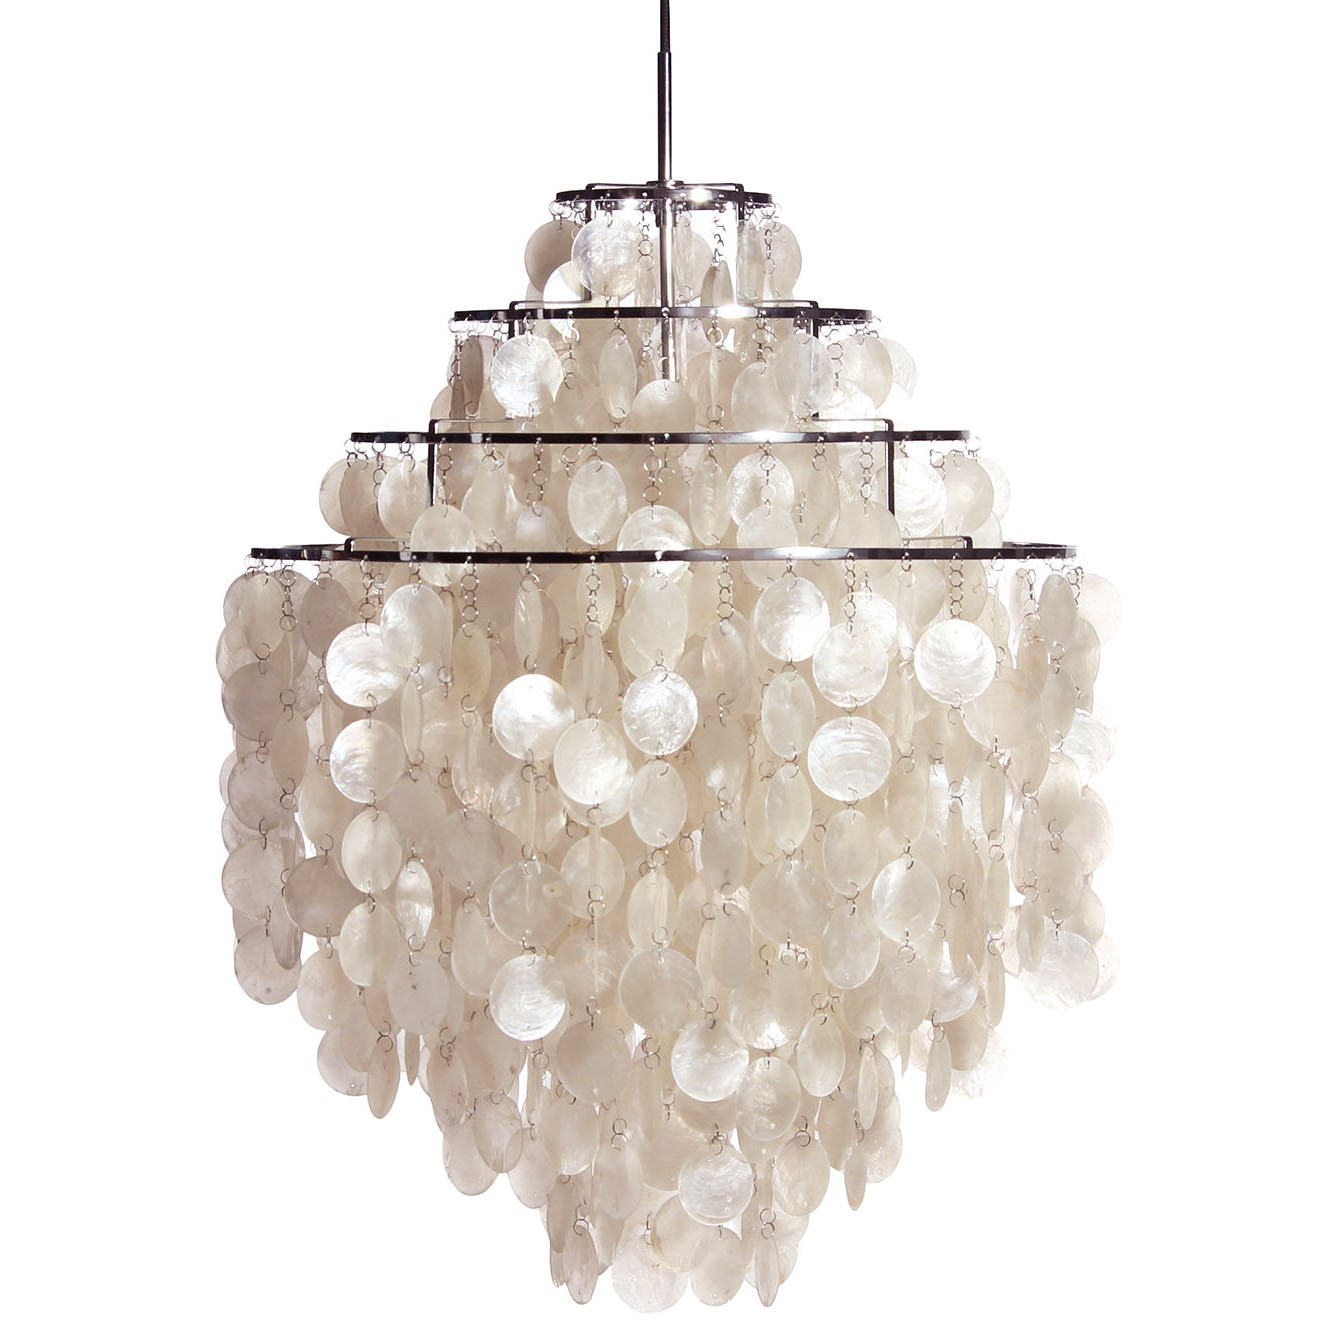 Large White FUN 0 DM Shell Capiz Ceiling Light Pendant ...